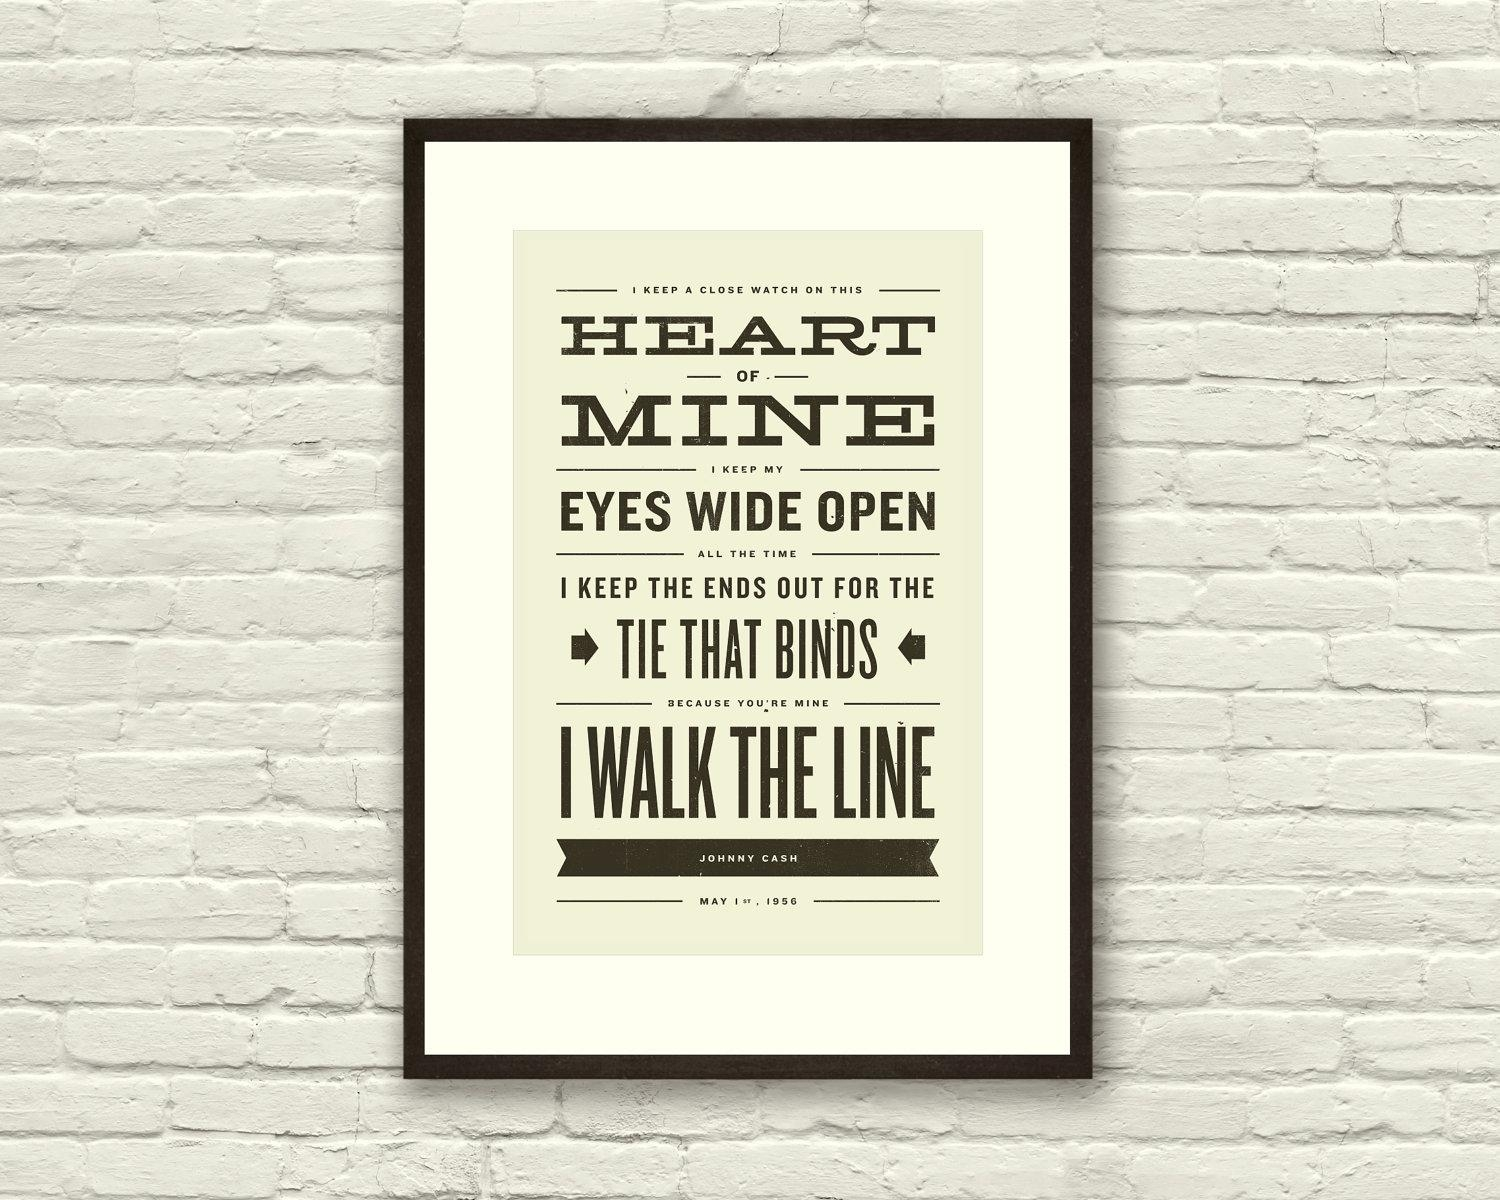 Johnny Cash Inspired Walk The Line Lyric Poster 11 X17 inside Johnny Cash Wall Art